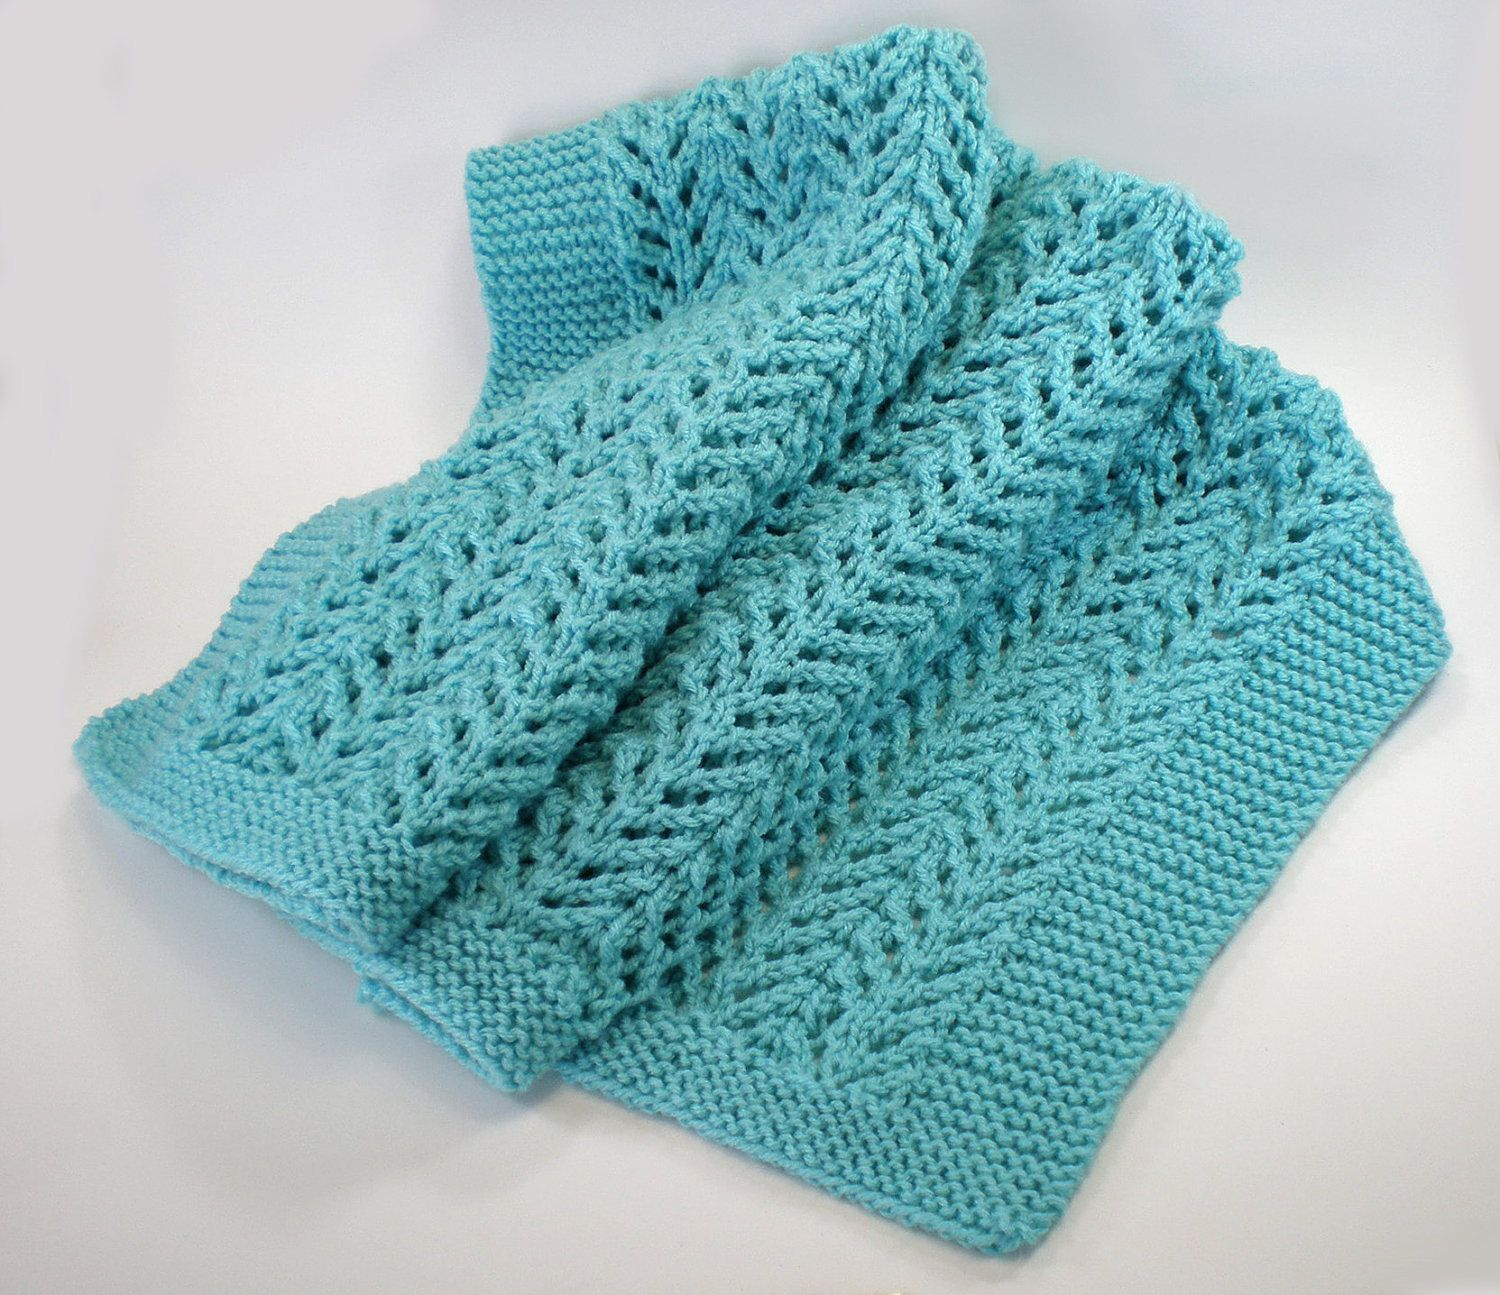 Heirloom knit baby blanket easy care machine by IKnit4You2 on Etsy ...